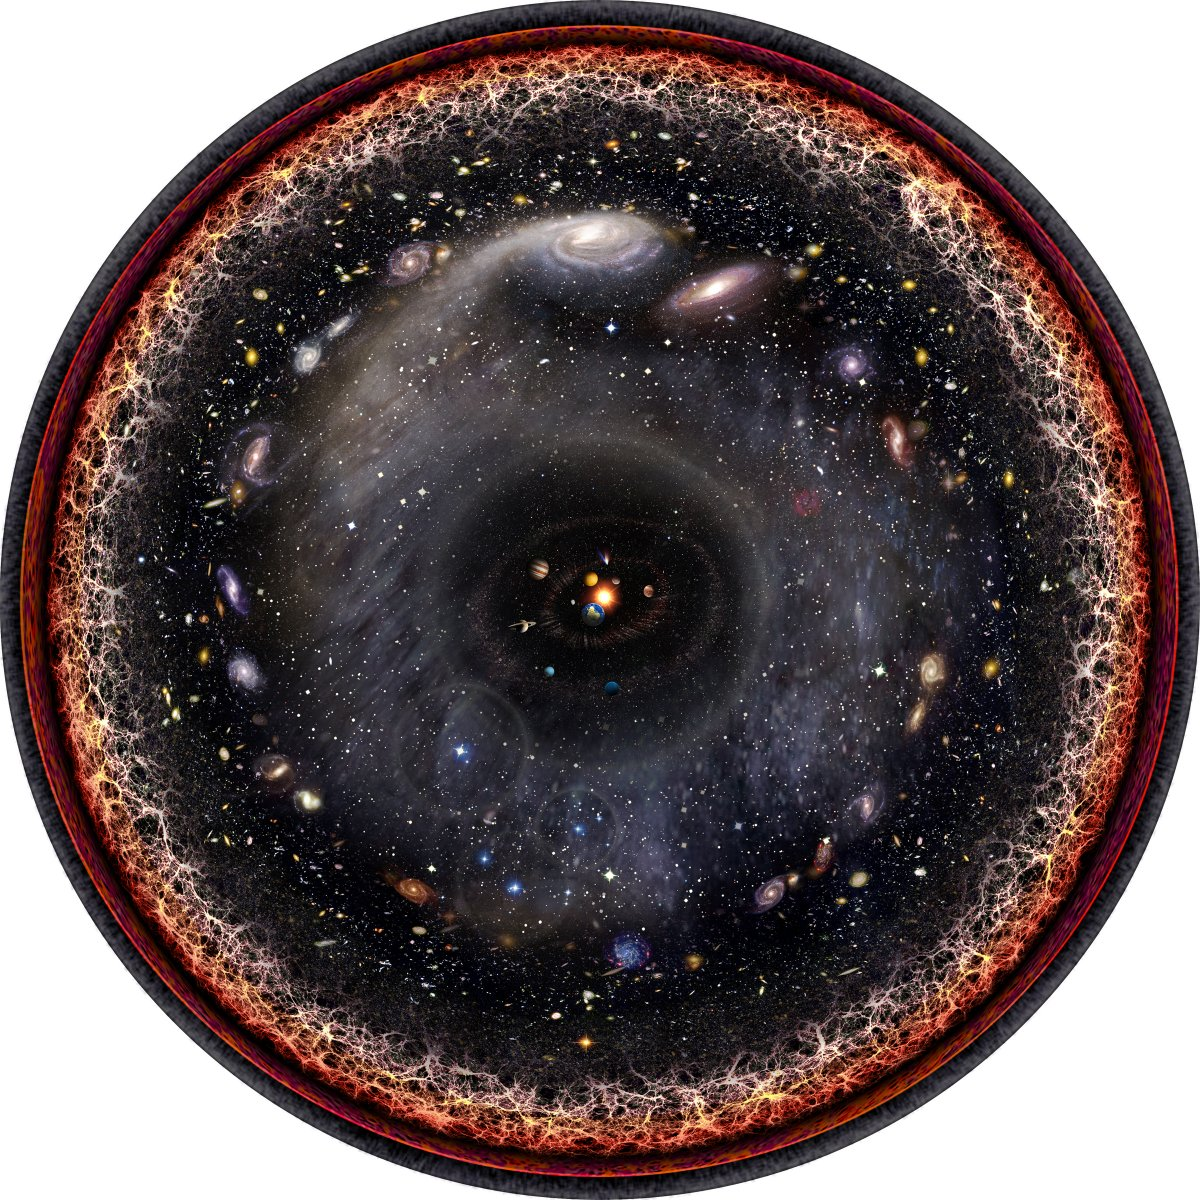 A Logarithmic Universe https://t.co/DqEroUkcae